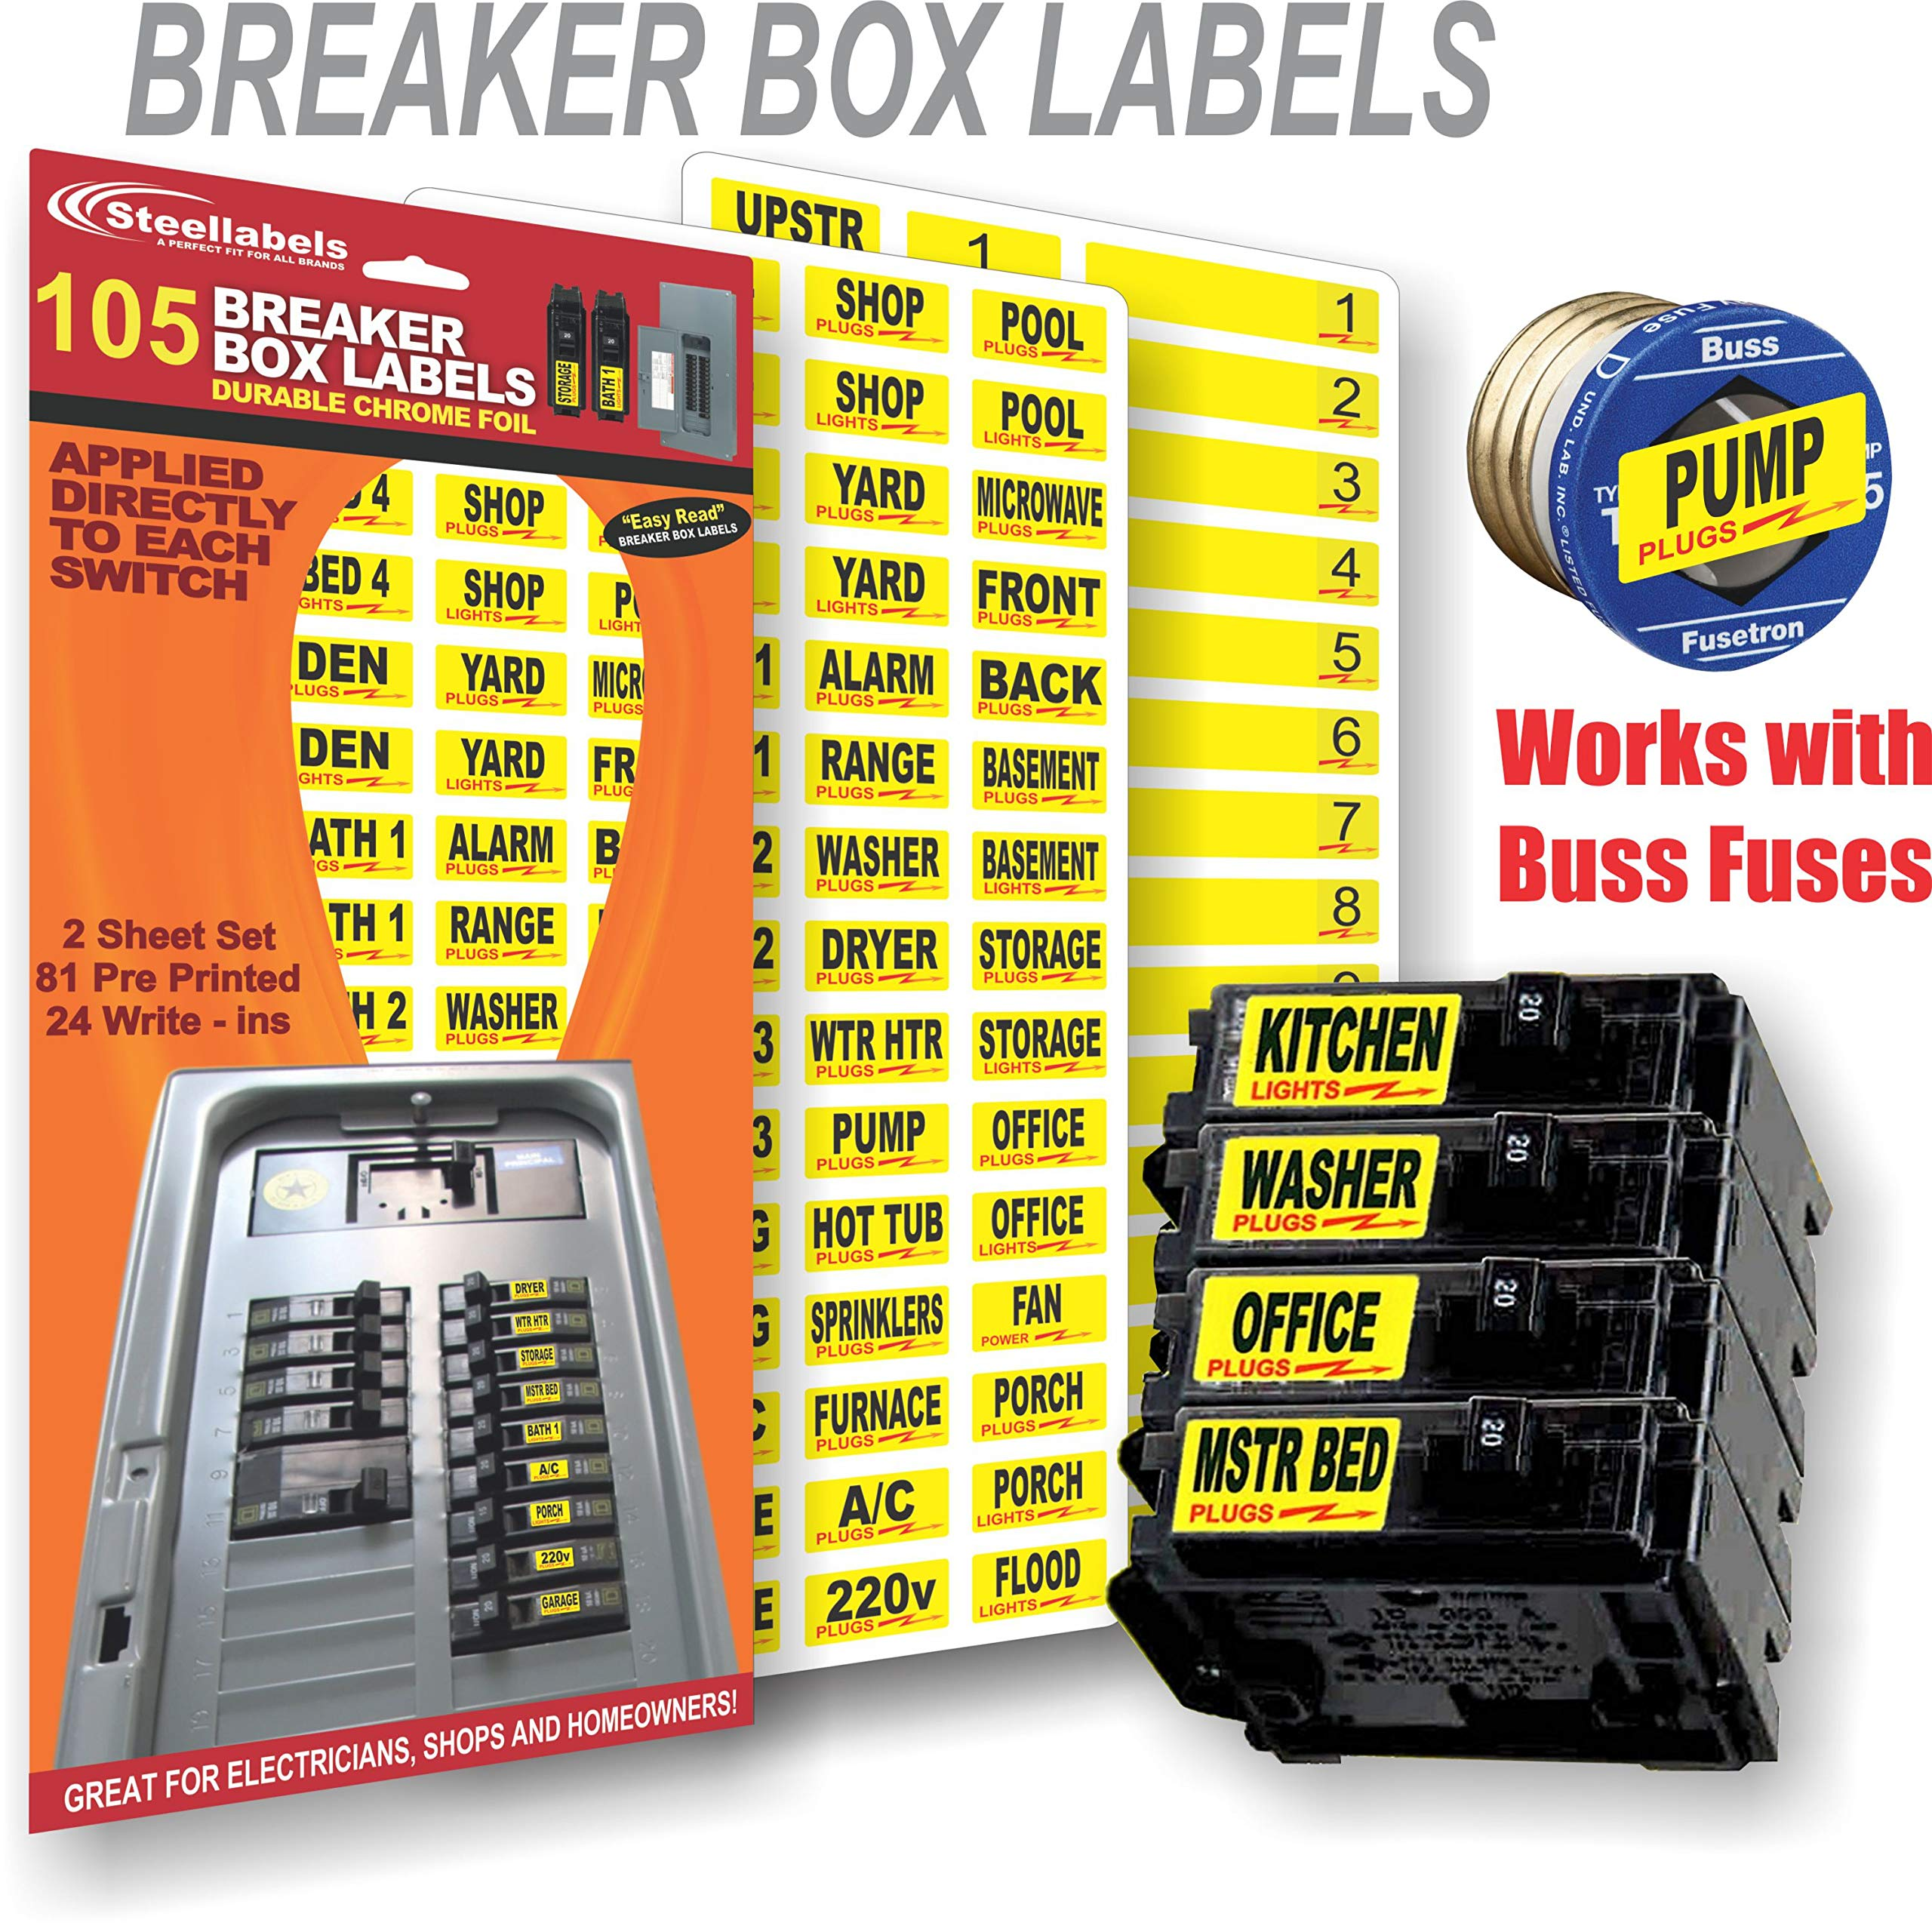 Circuit Breaker ID Tags plus Bonus Chrome Socket Labels for tool organizing, great for Home Owners, Apartments & Electricians, Decals fit all Breaker Panels & Switches, applies directly to the breaker by Steellabels (Image #3)